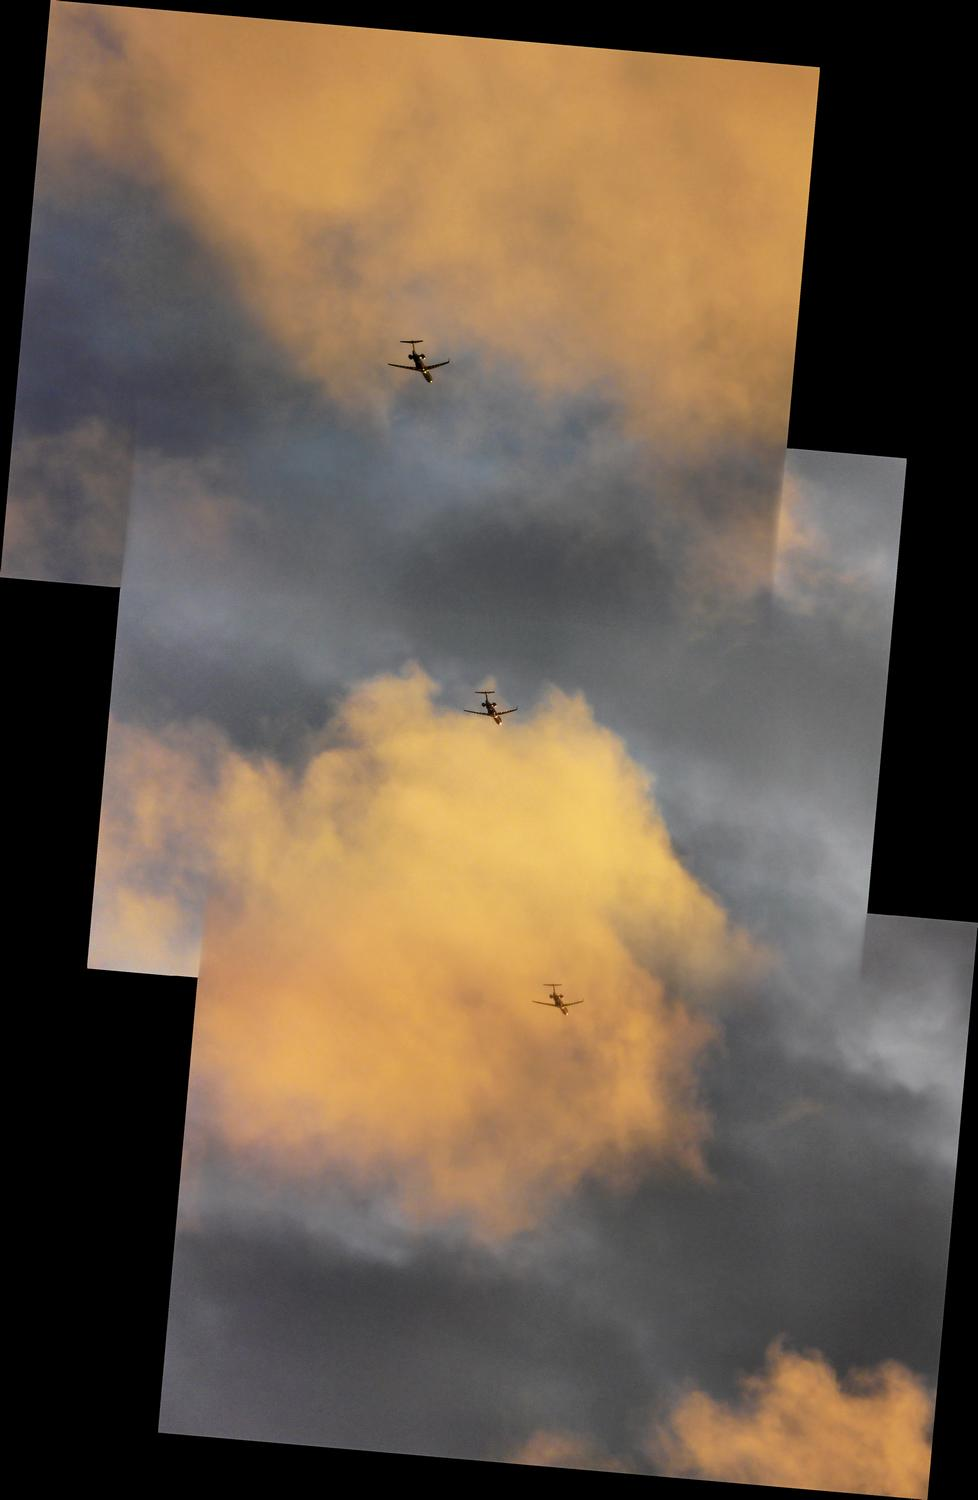 Sky planes panorama of a sky train - The DMC-FZ18, a sunset,  and a glass of beer - Tony Karp, design, art, photography, techno-impressionist, techno-impressionism, aerial photography , drone , drones , dji , mavic pro , video , 3D printing - Books -